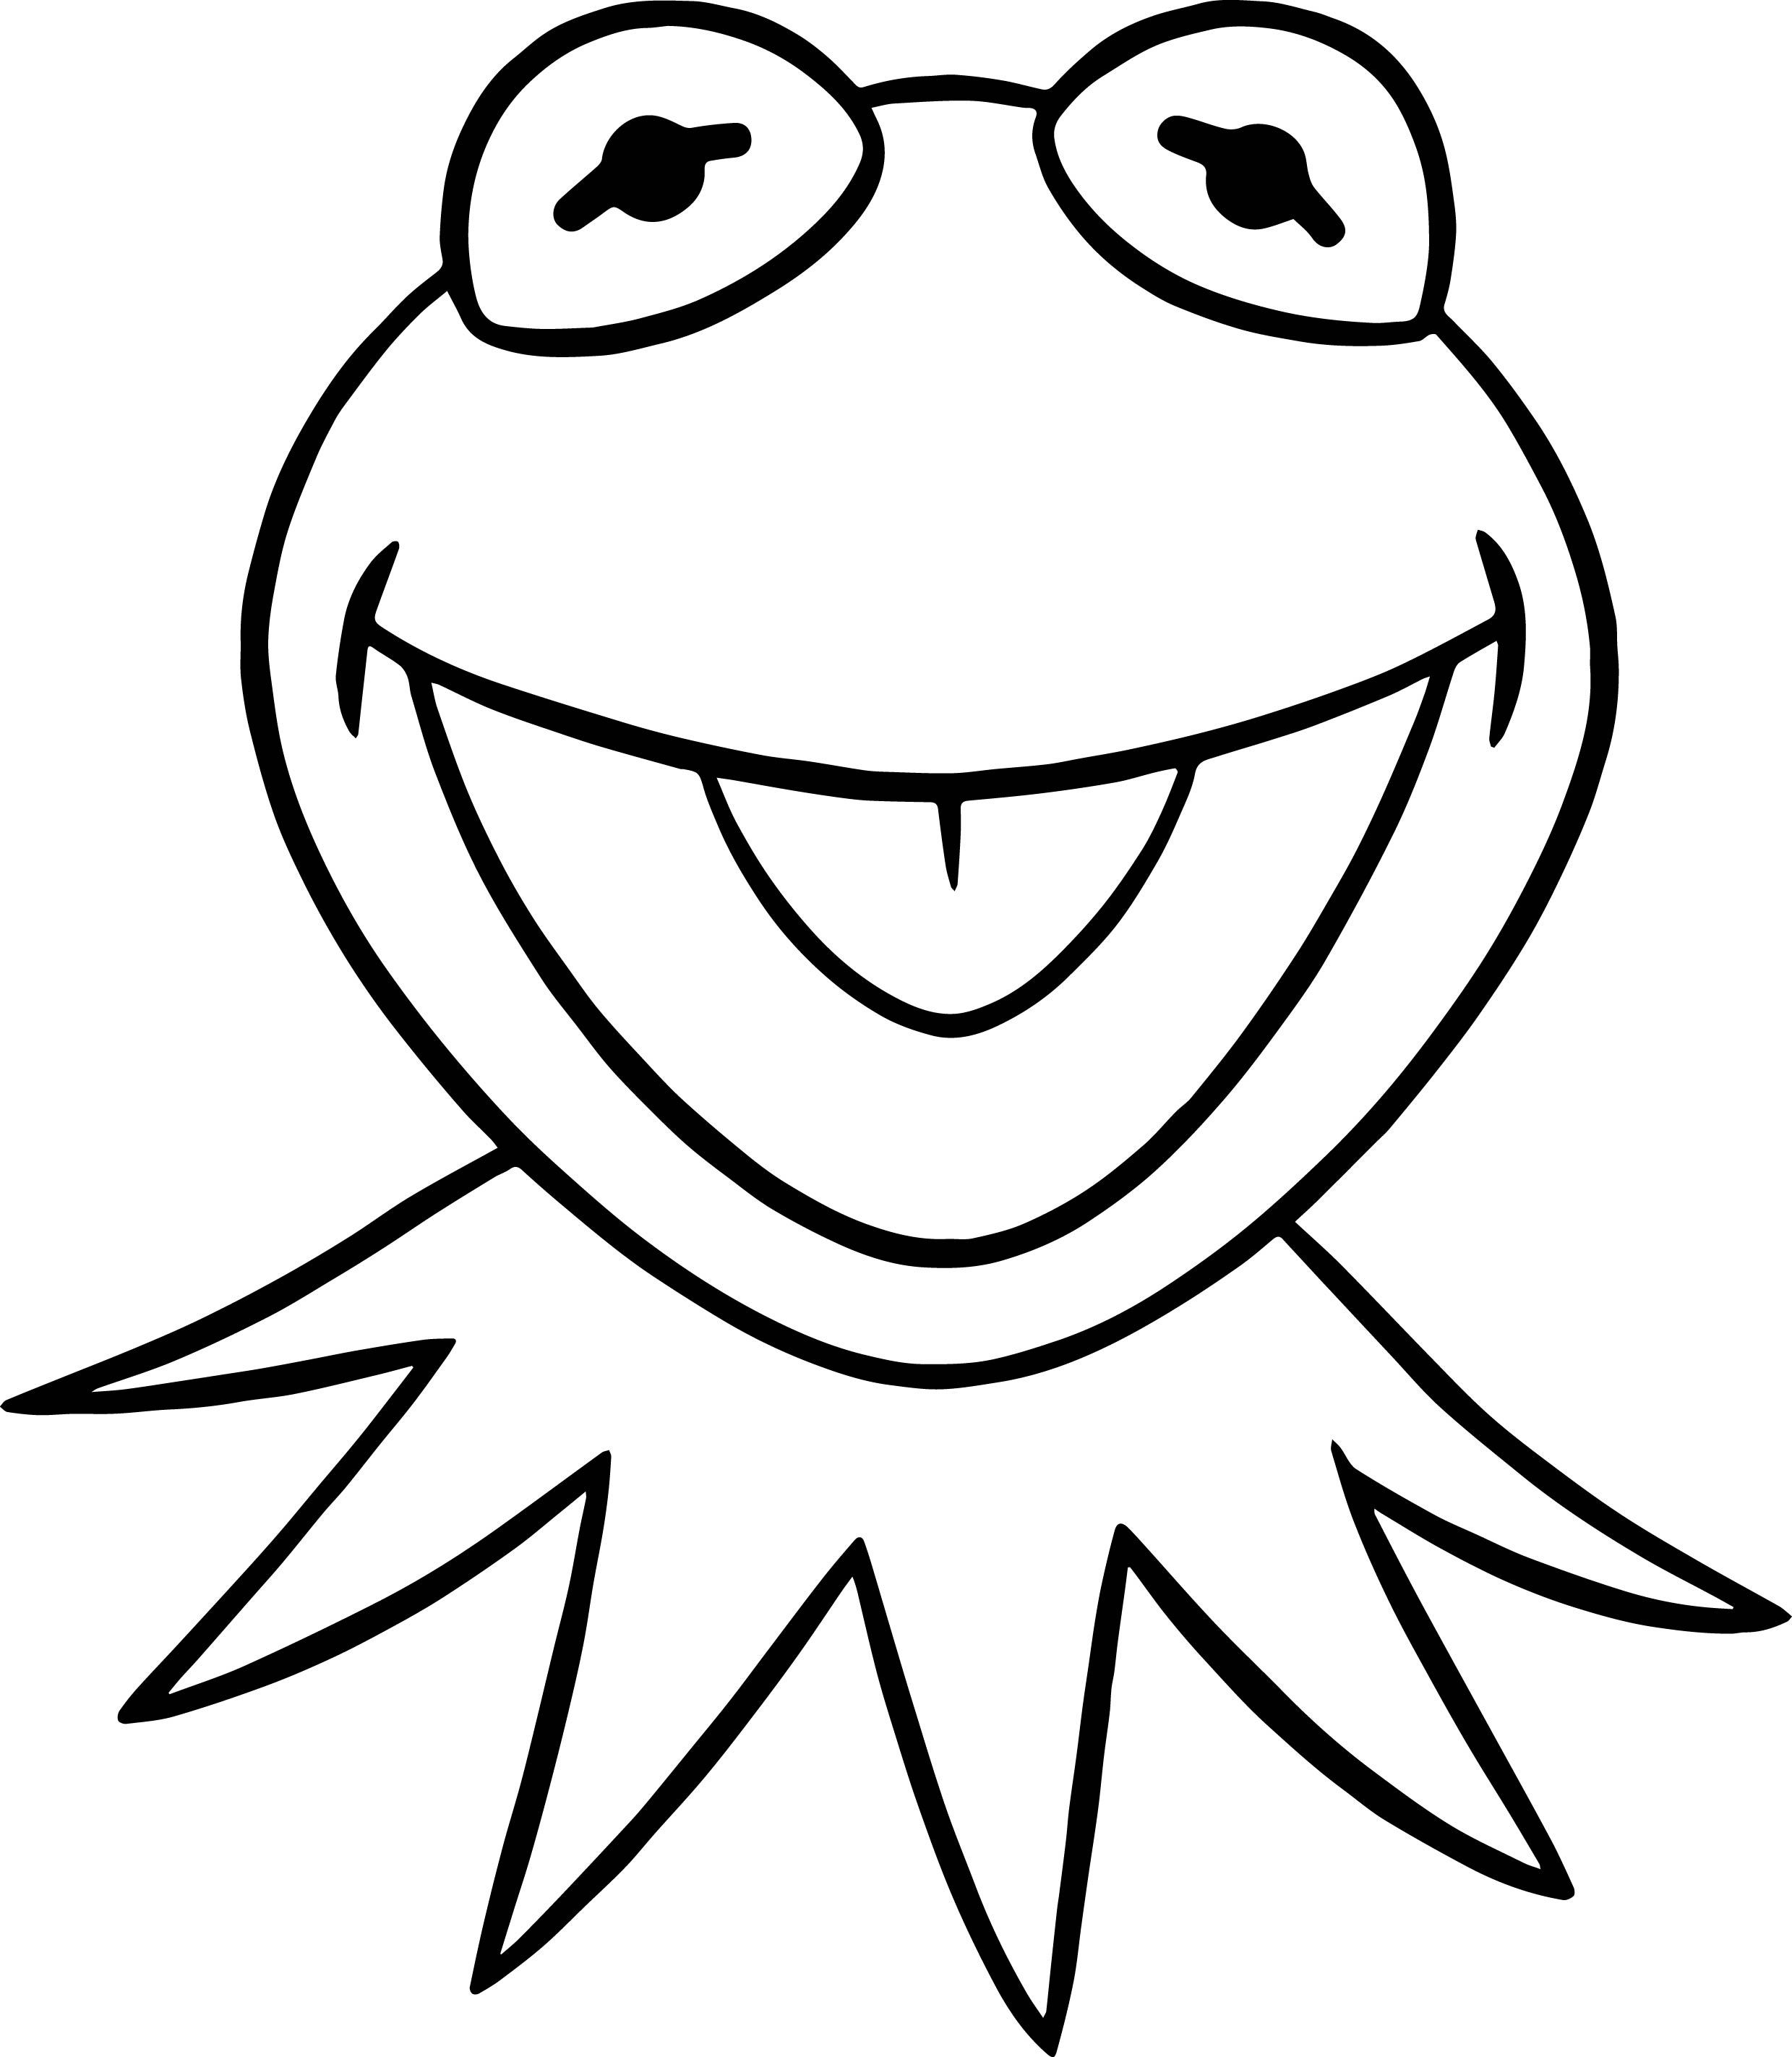 2479x2845 Shocking The Muppets Kermit Frog Coloring Pages Wecoloringpage